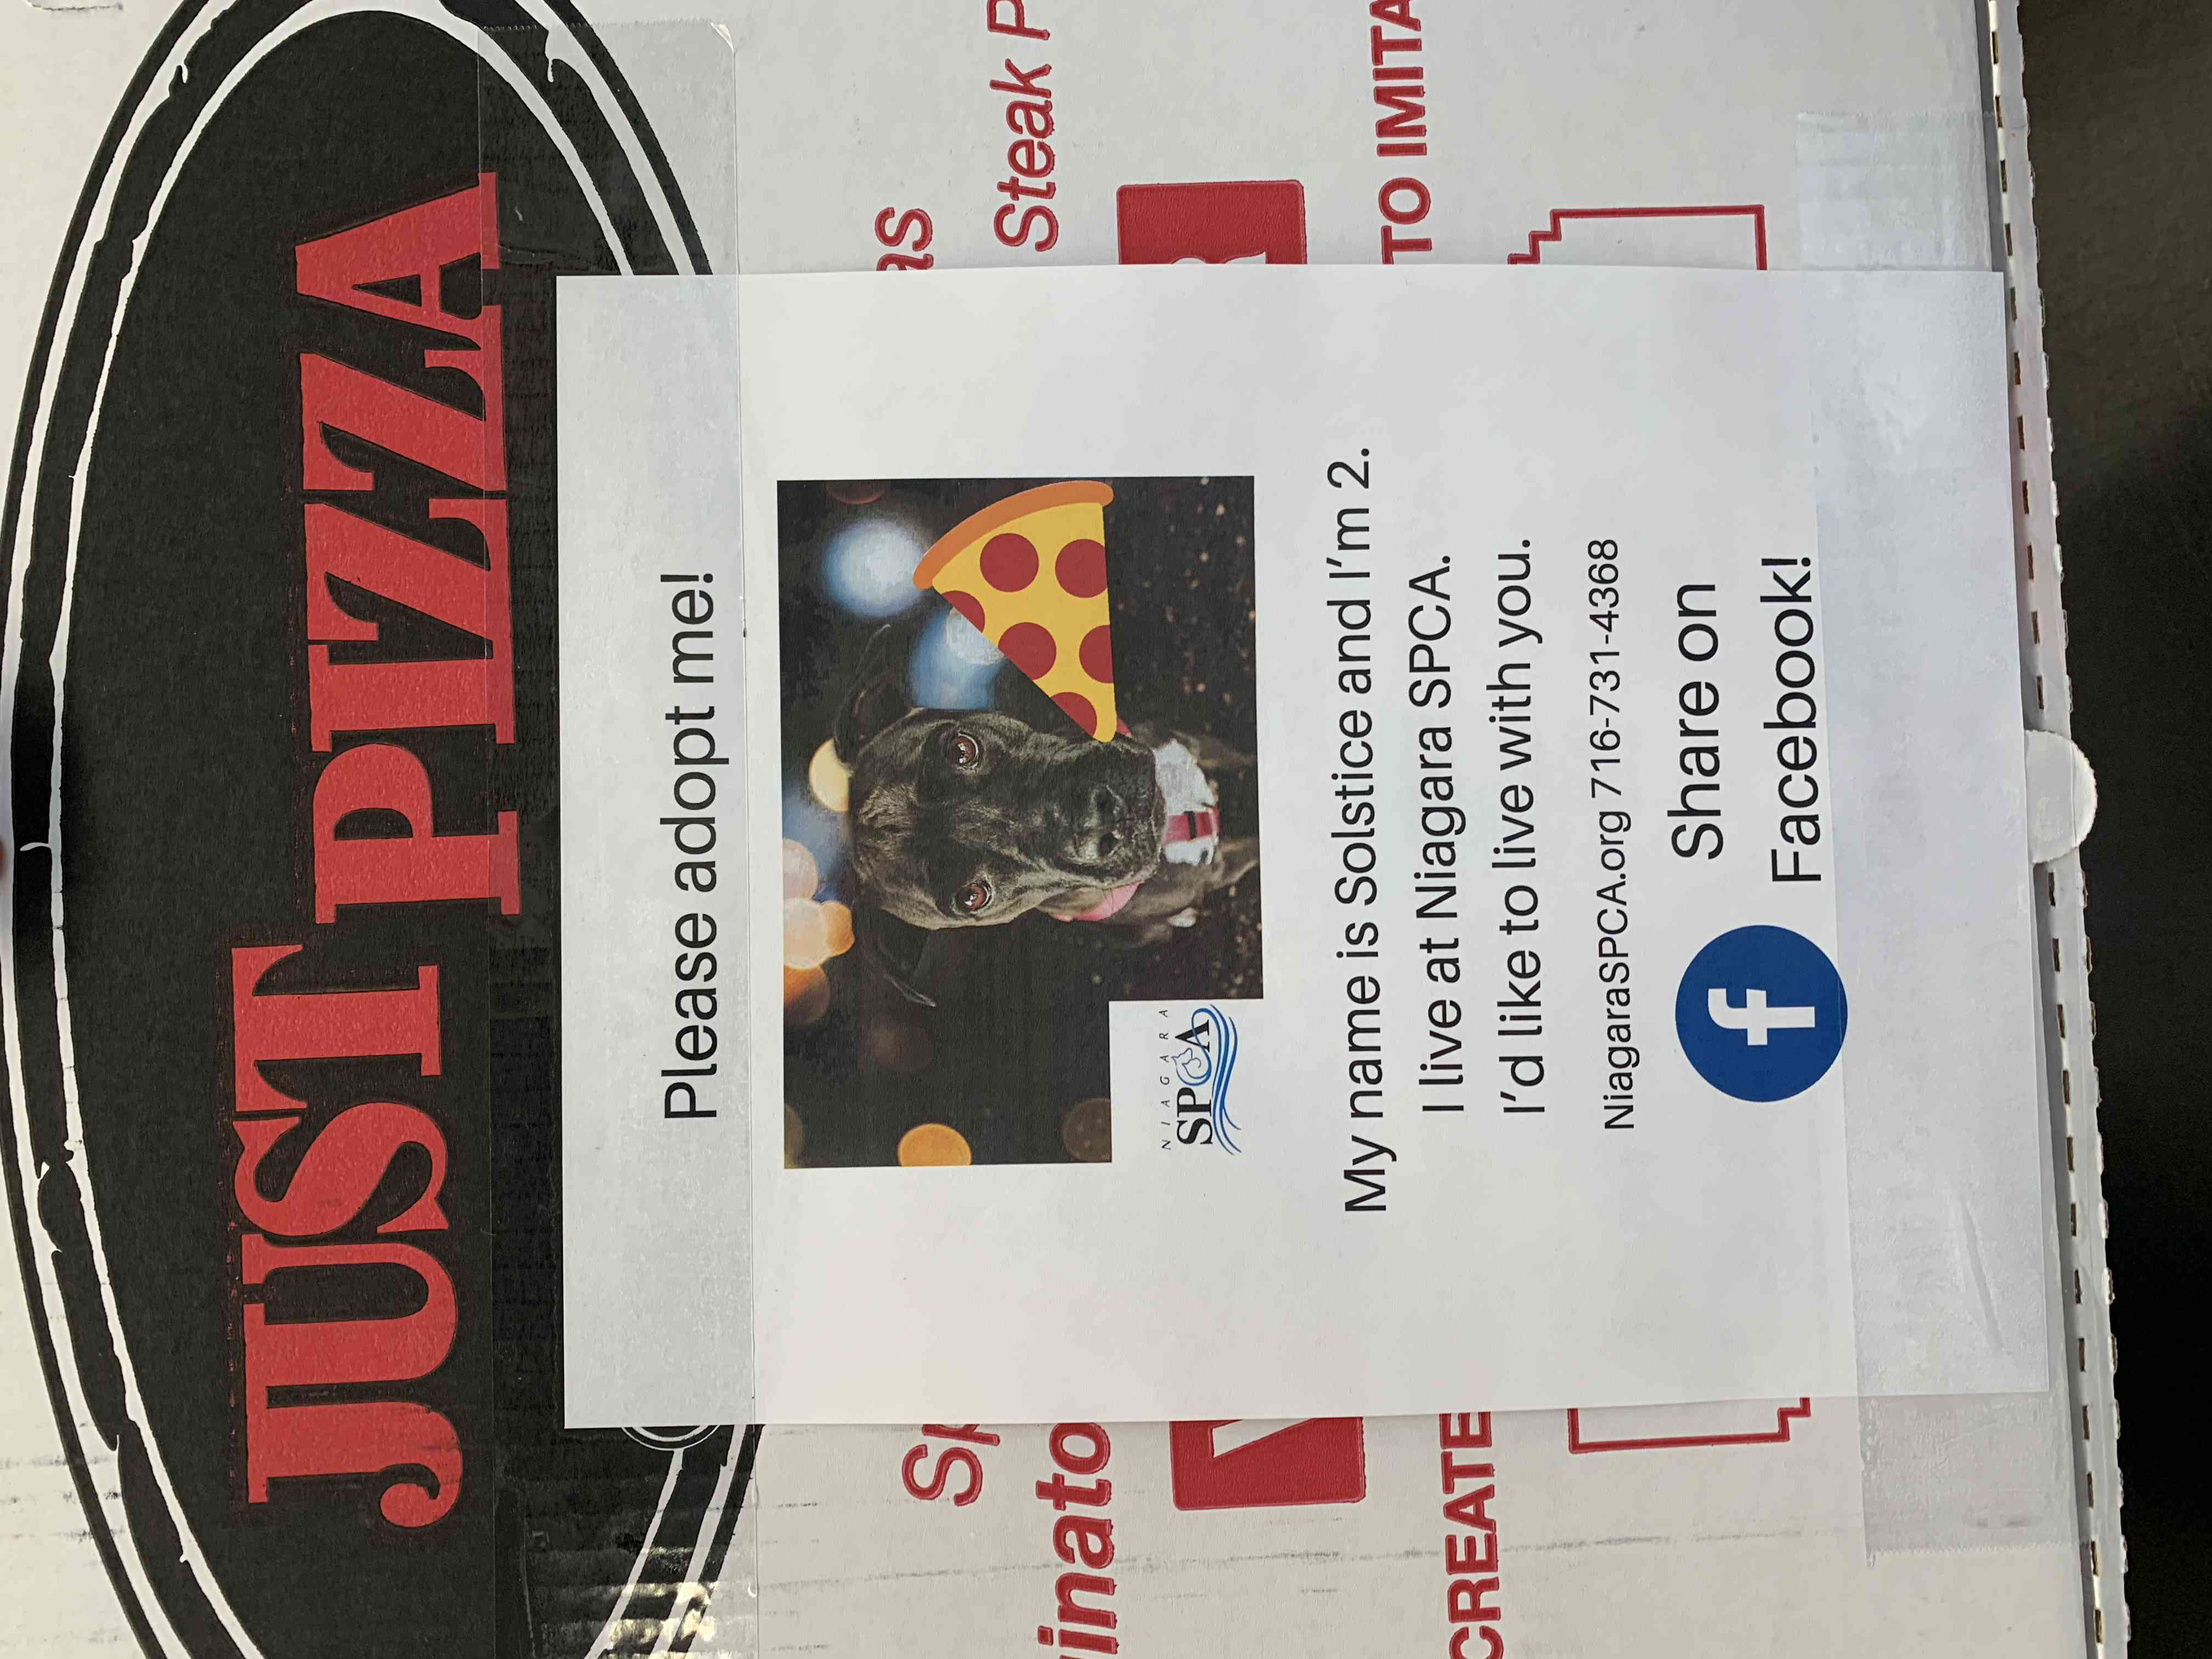 adoptable dog Solstice on a pizza box